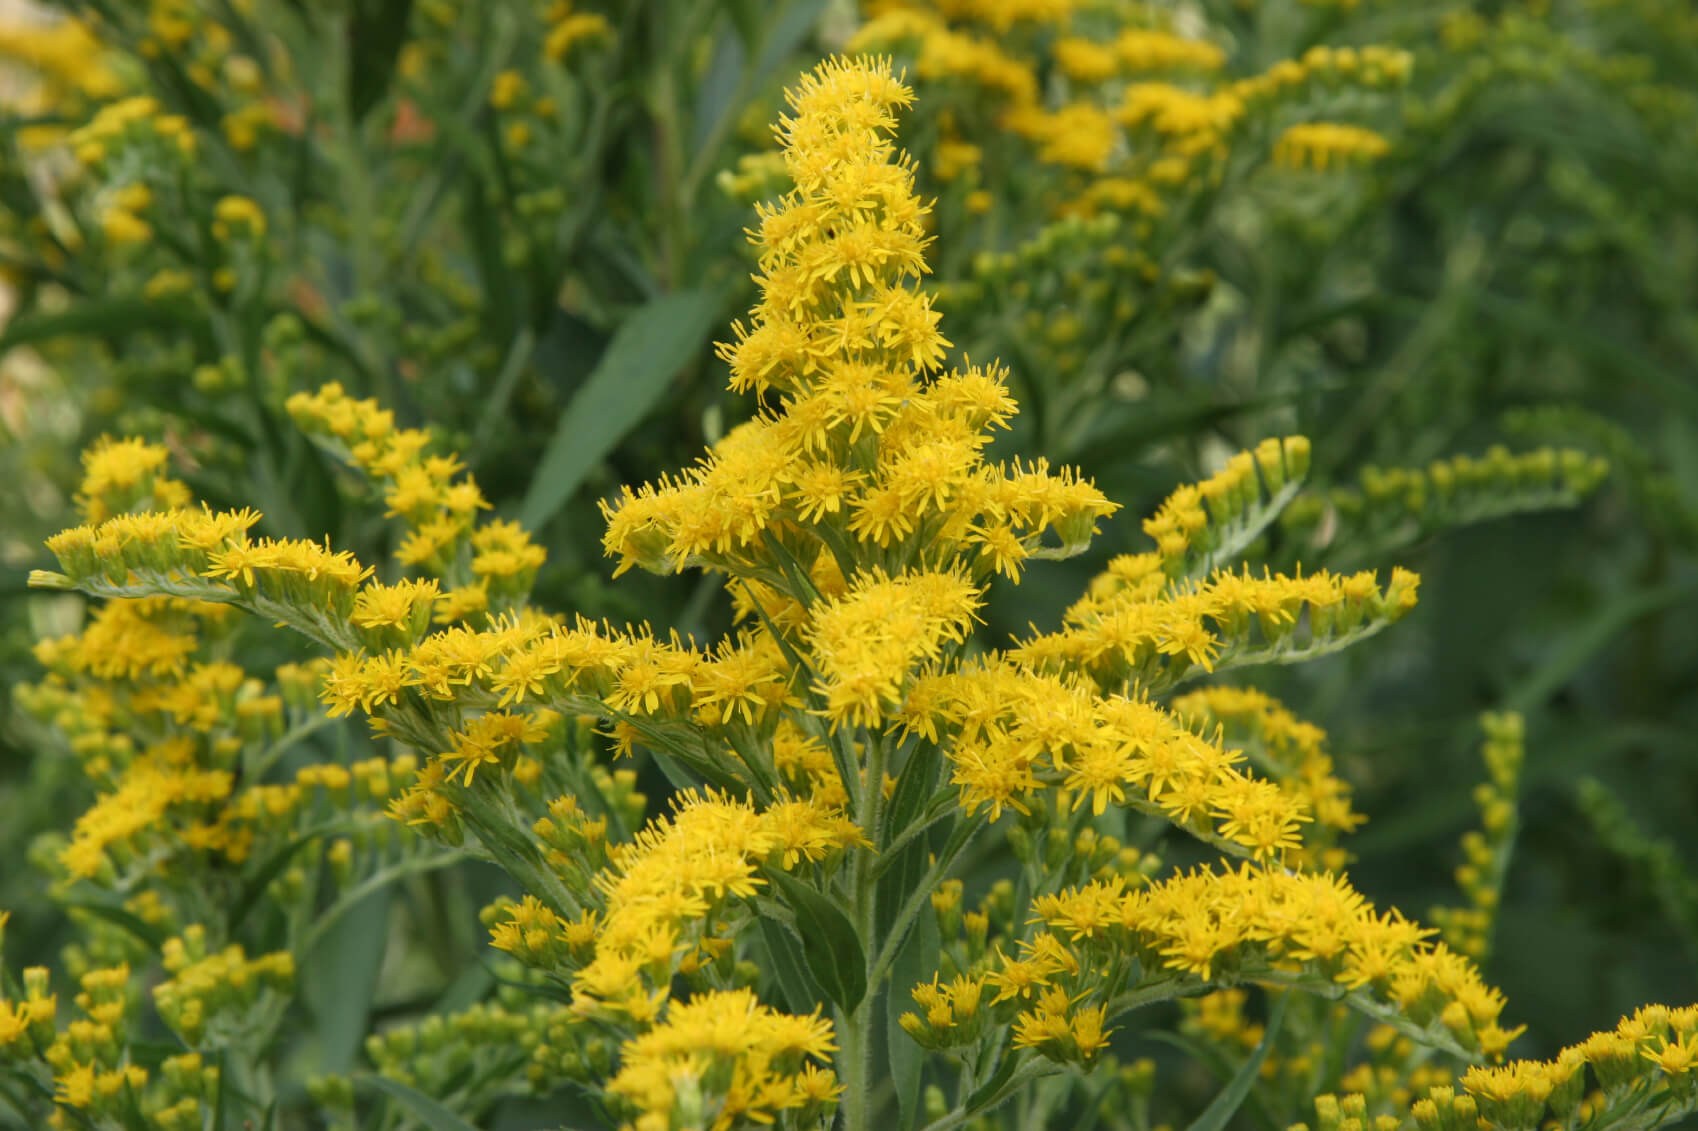 Solidago | Fall Perennials for a Splendid Array of Flowers